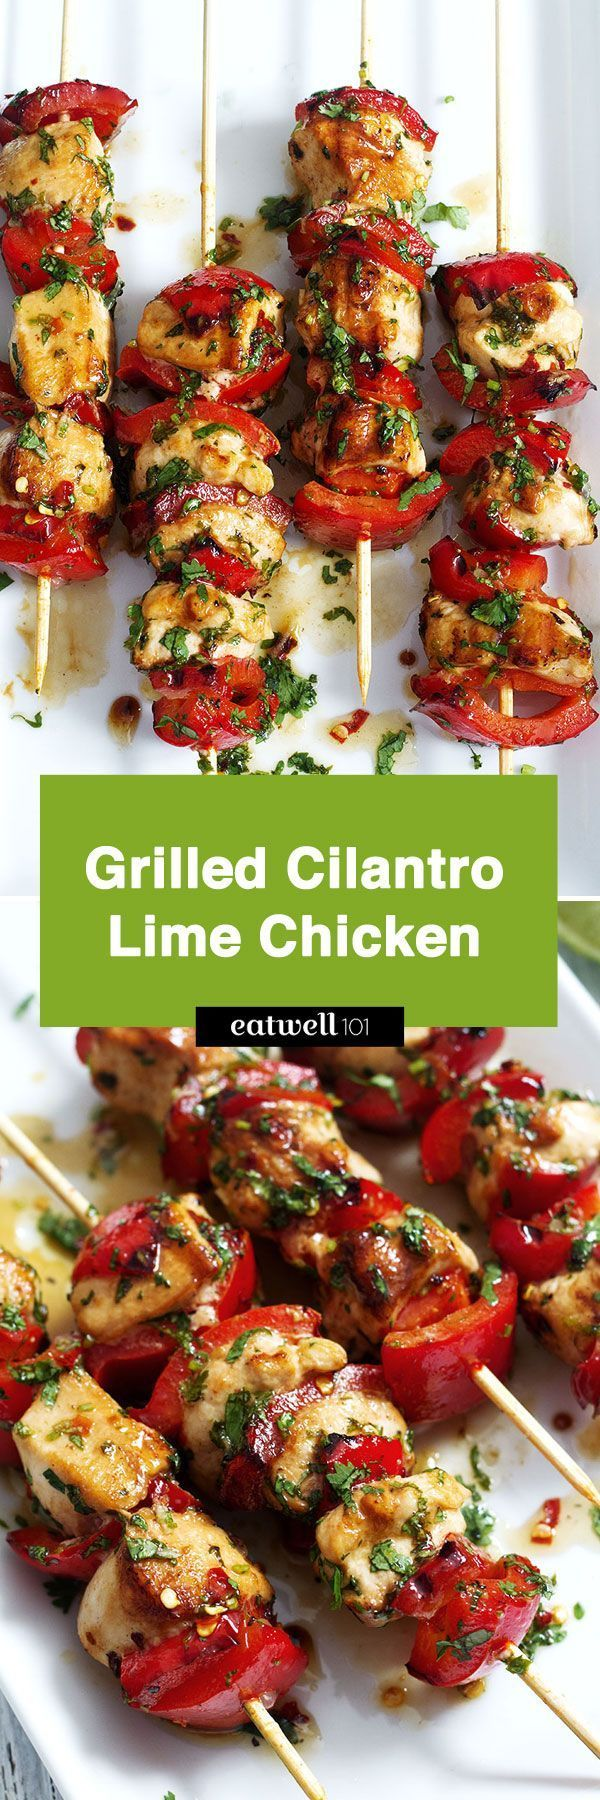 A savory and nourishing grilled chicken perfect recipe for your Summer cookouts. Chicken breasts seasoned in salty, sweet, sour, and spicy marinade (made with Cilantro,lemon juice, honey and Chili)…